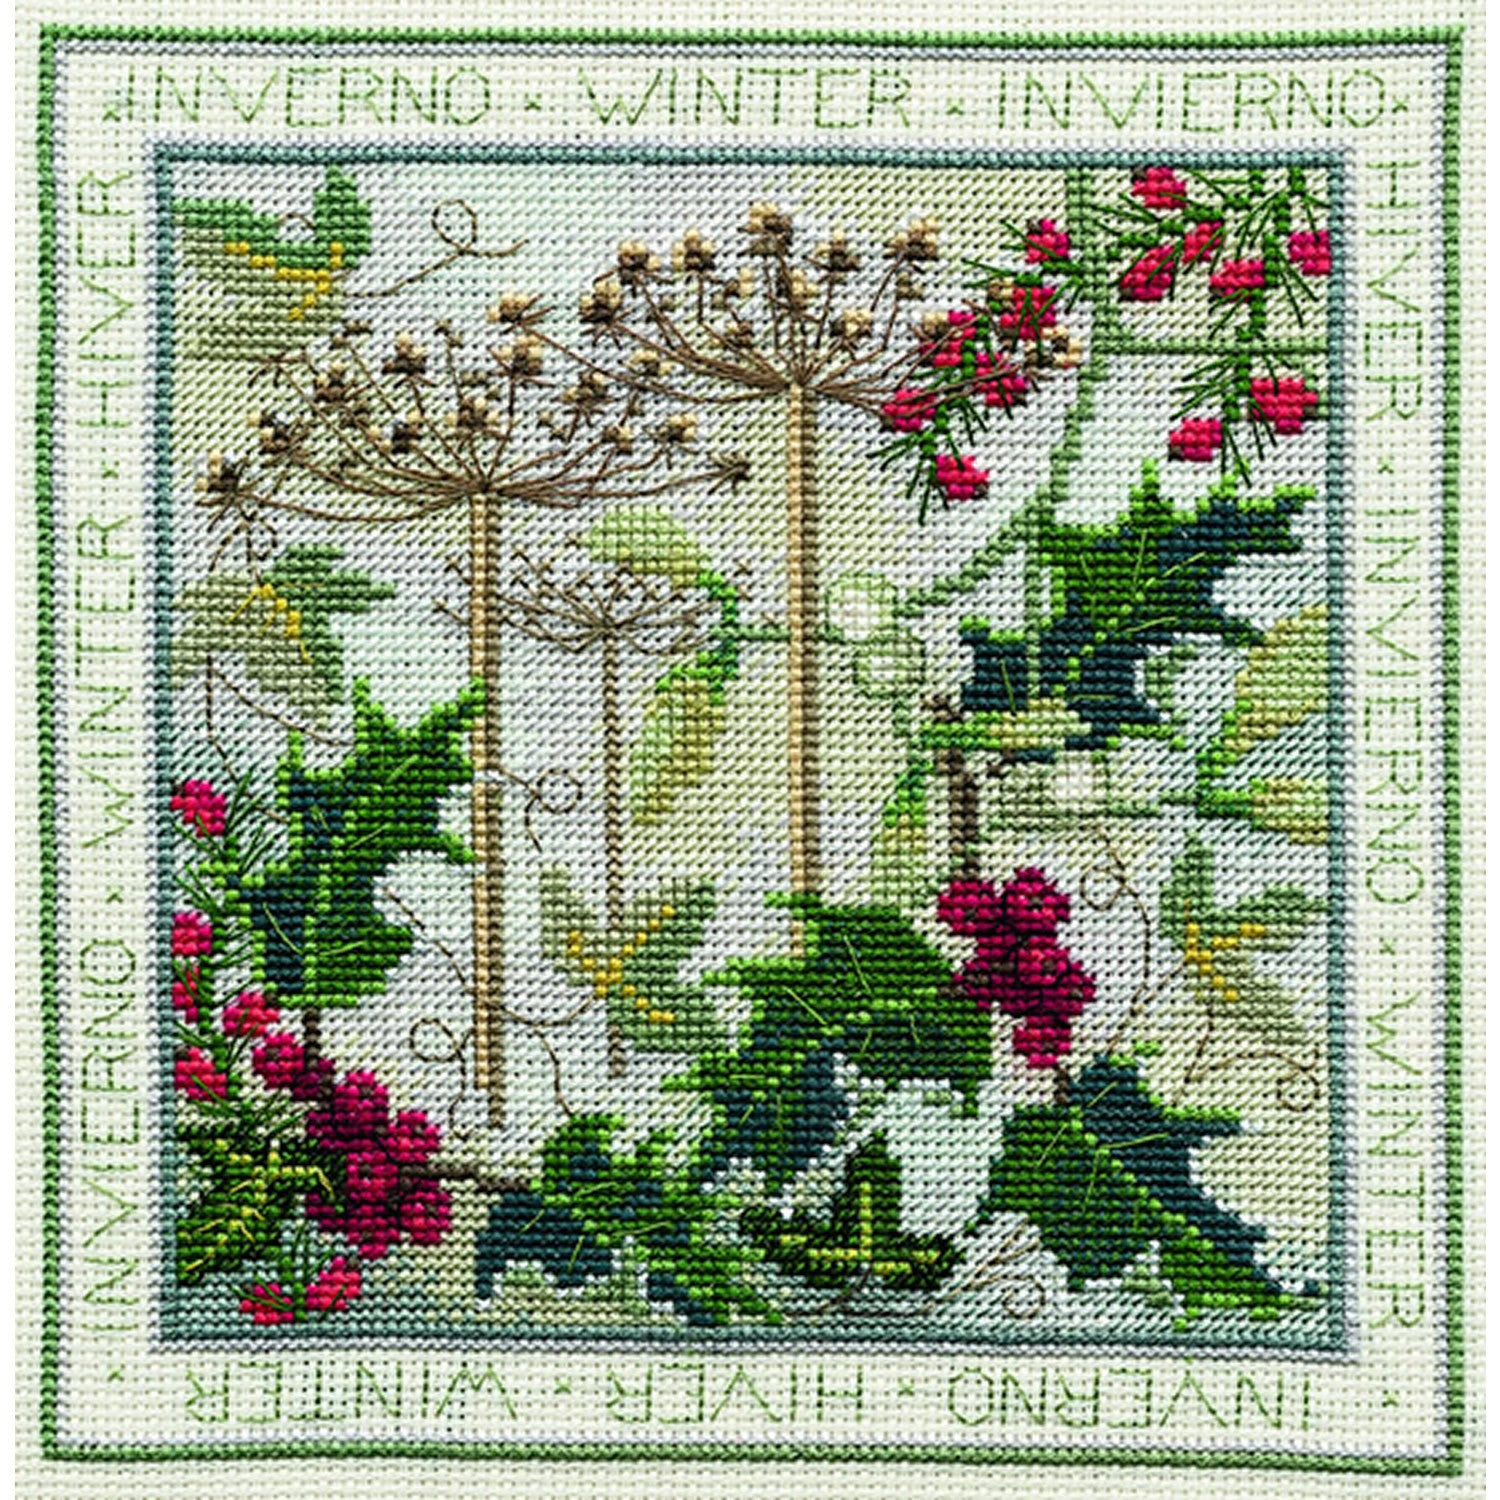 Four Seasons - Winter<br />Counted Cross Stitch Kit